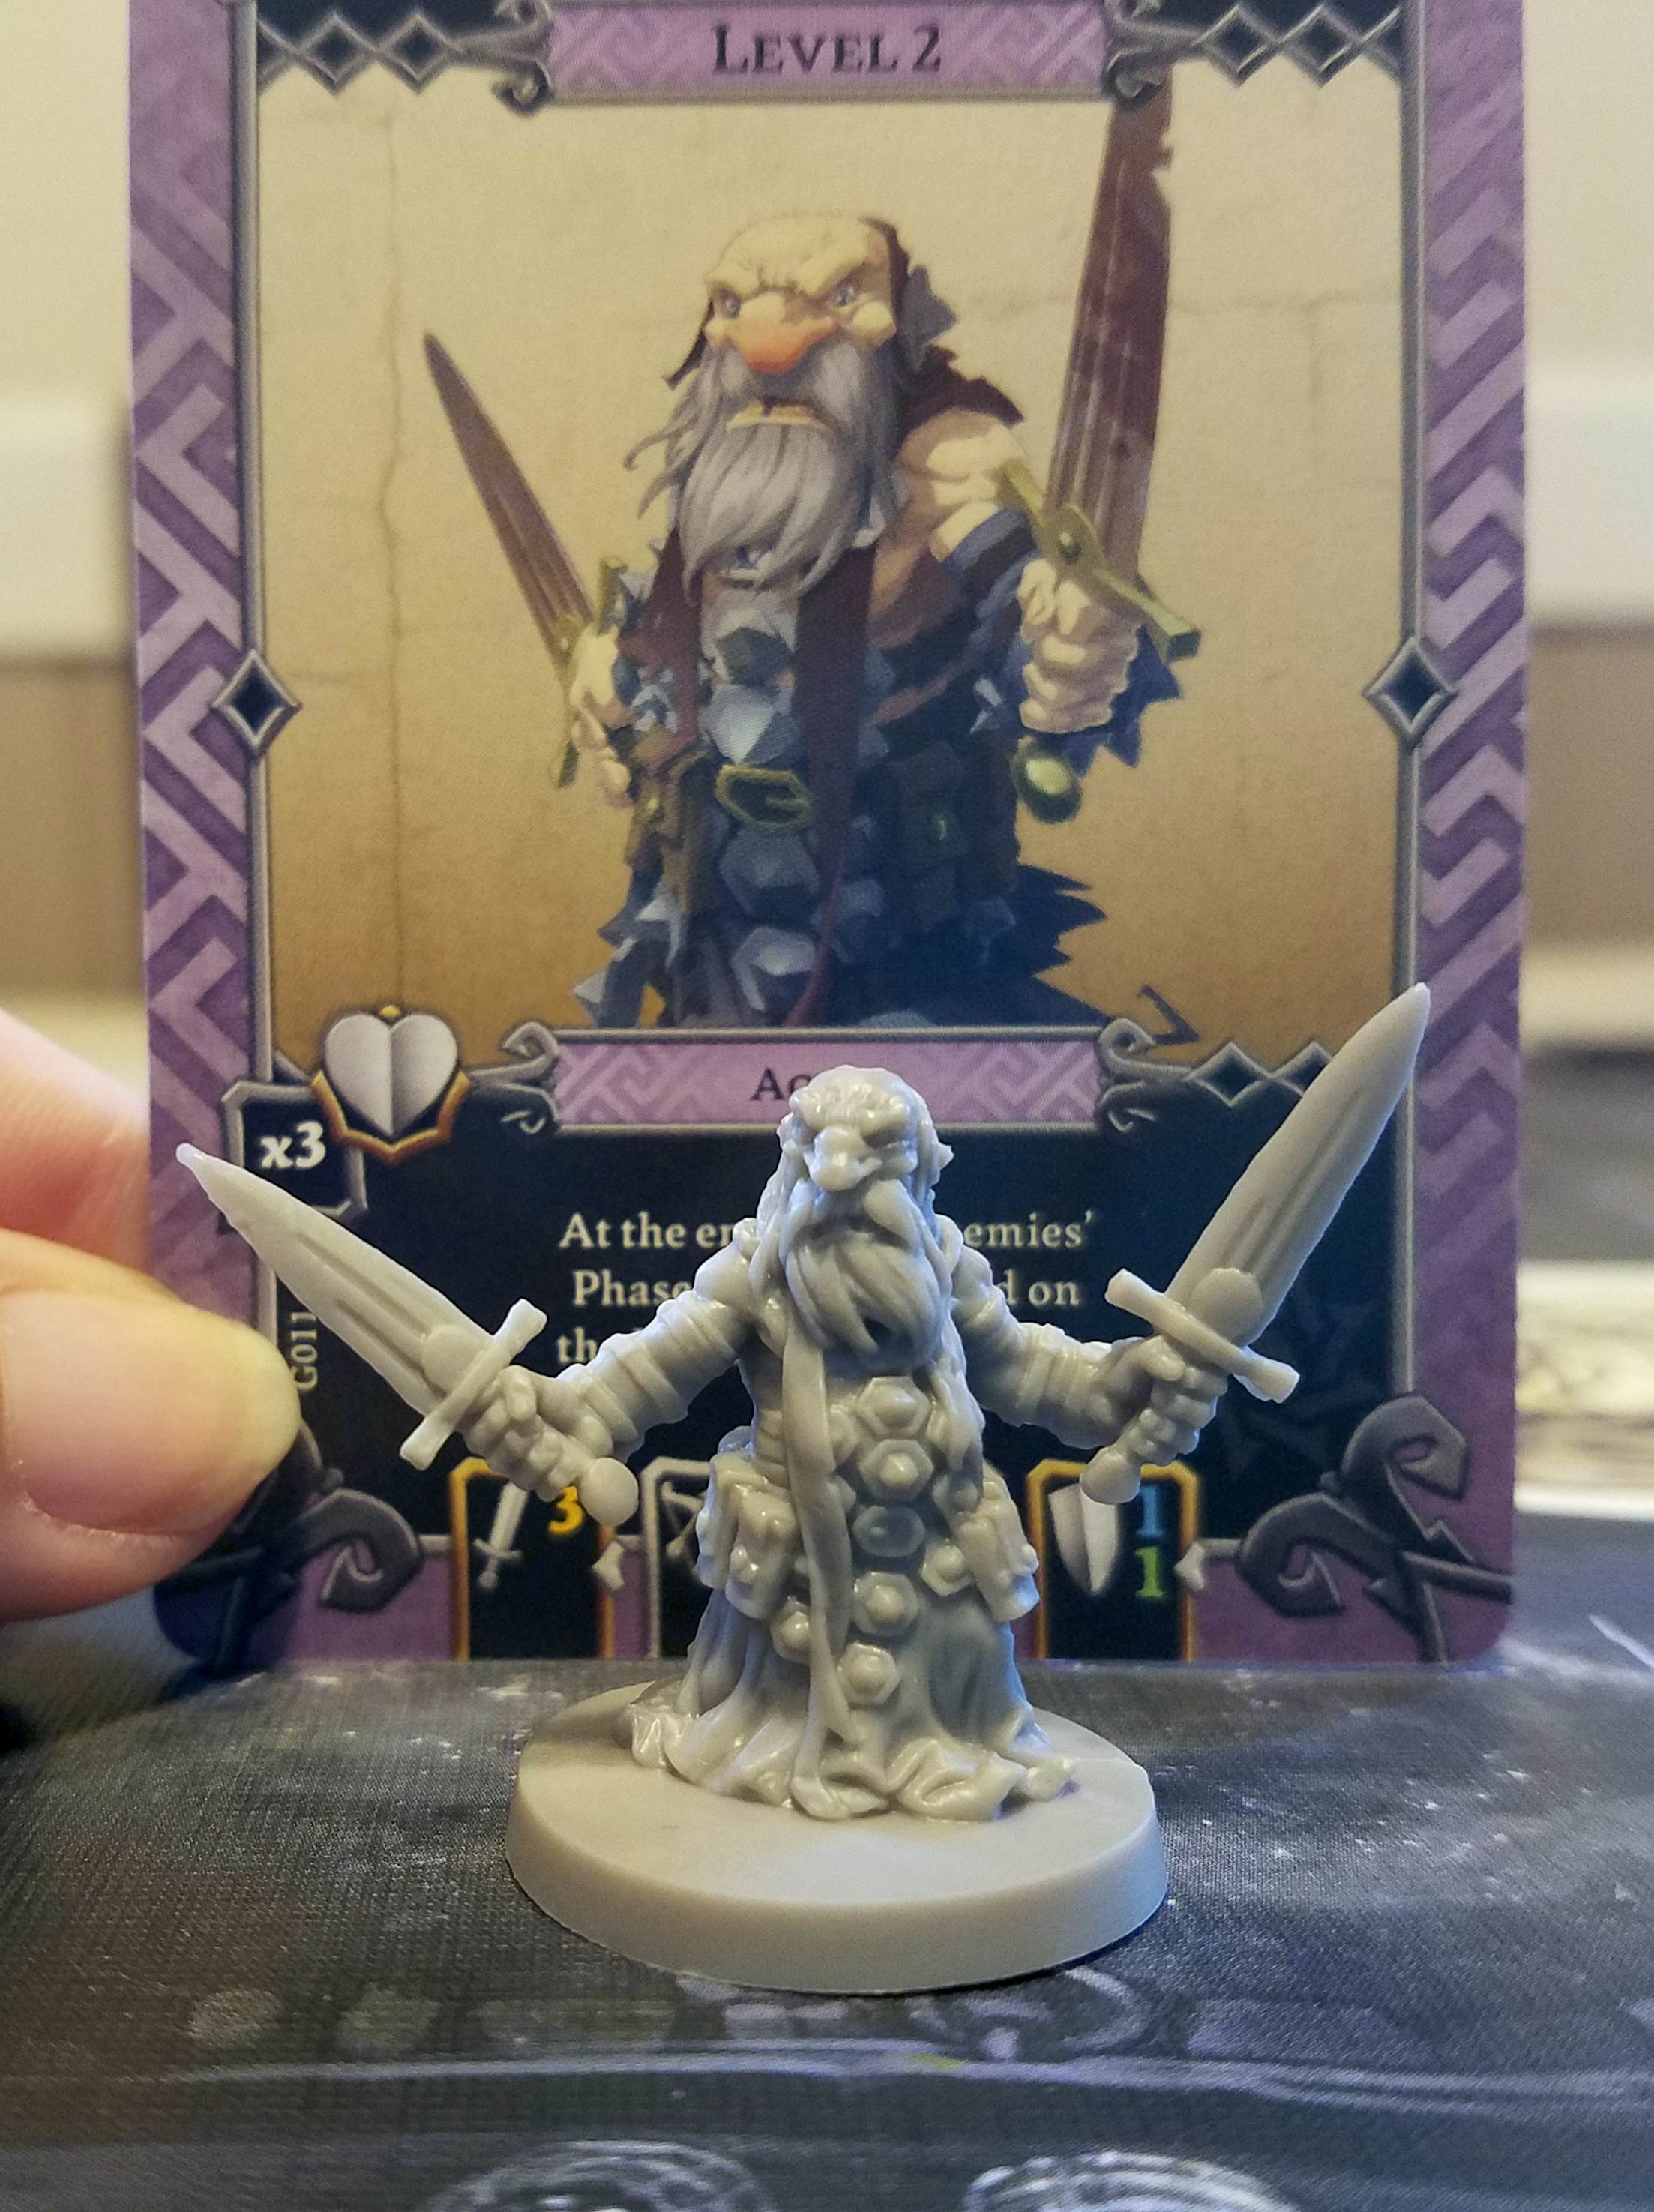 We had a little trouble matching monsters to their cards, mainly as the pictures on the card and the model aren't exactly the same. Having the same number on the card as is on the bottom of the mini would have been a real time saver for our first few games. (Also this guy is totally the worst example of my issue as he matches up pretty well to his card.)